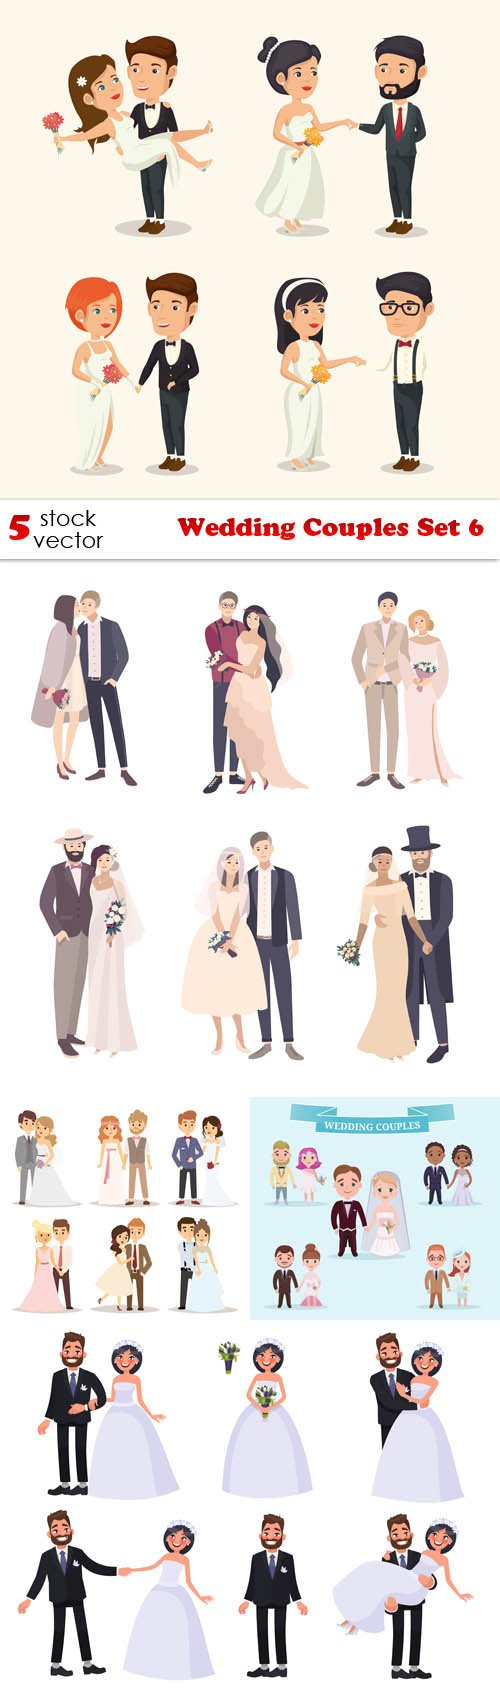 Vectors - Wedding Couples Set 6